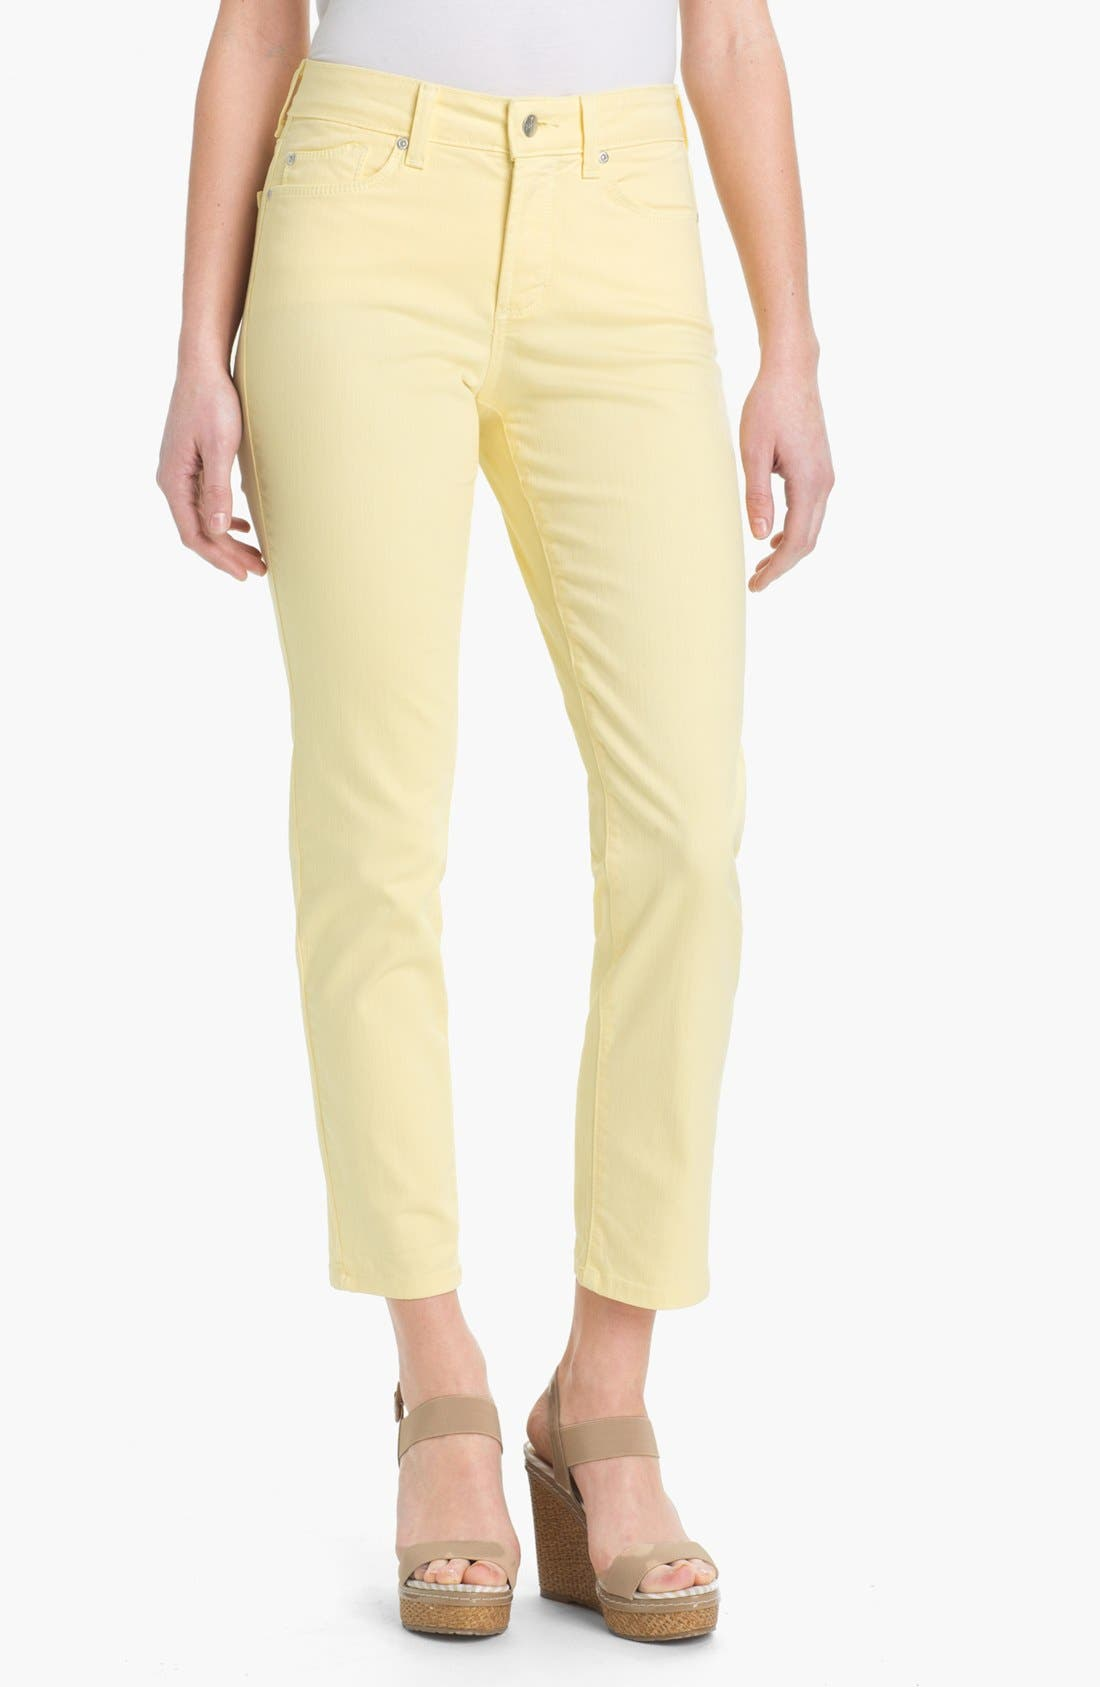 Alternate Image 1 Selected - NYDJ 'Alisha' Skinny Stretch Ankle Jeans (Petite)